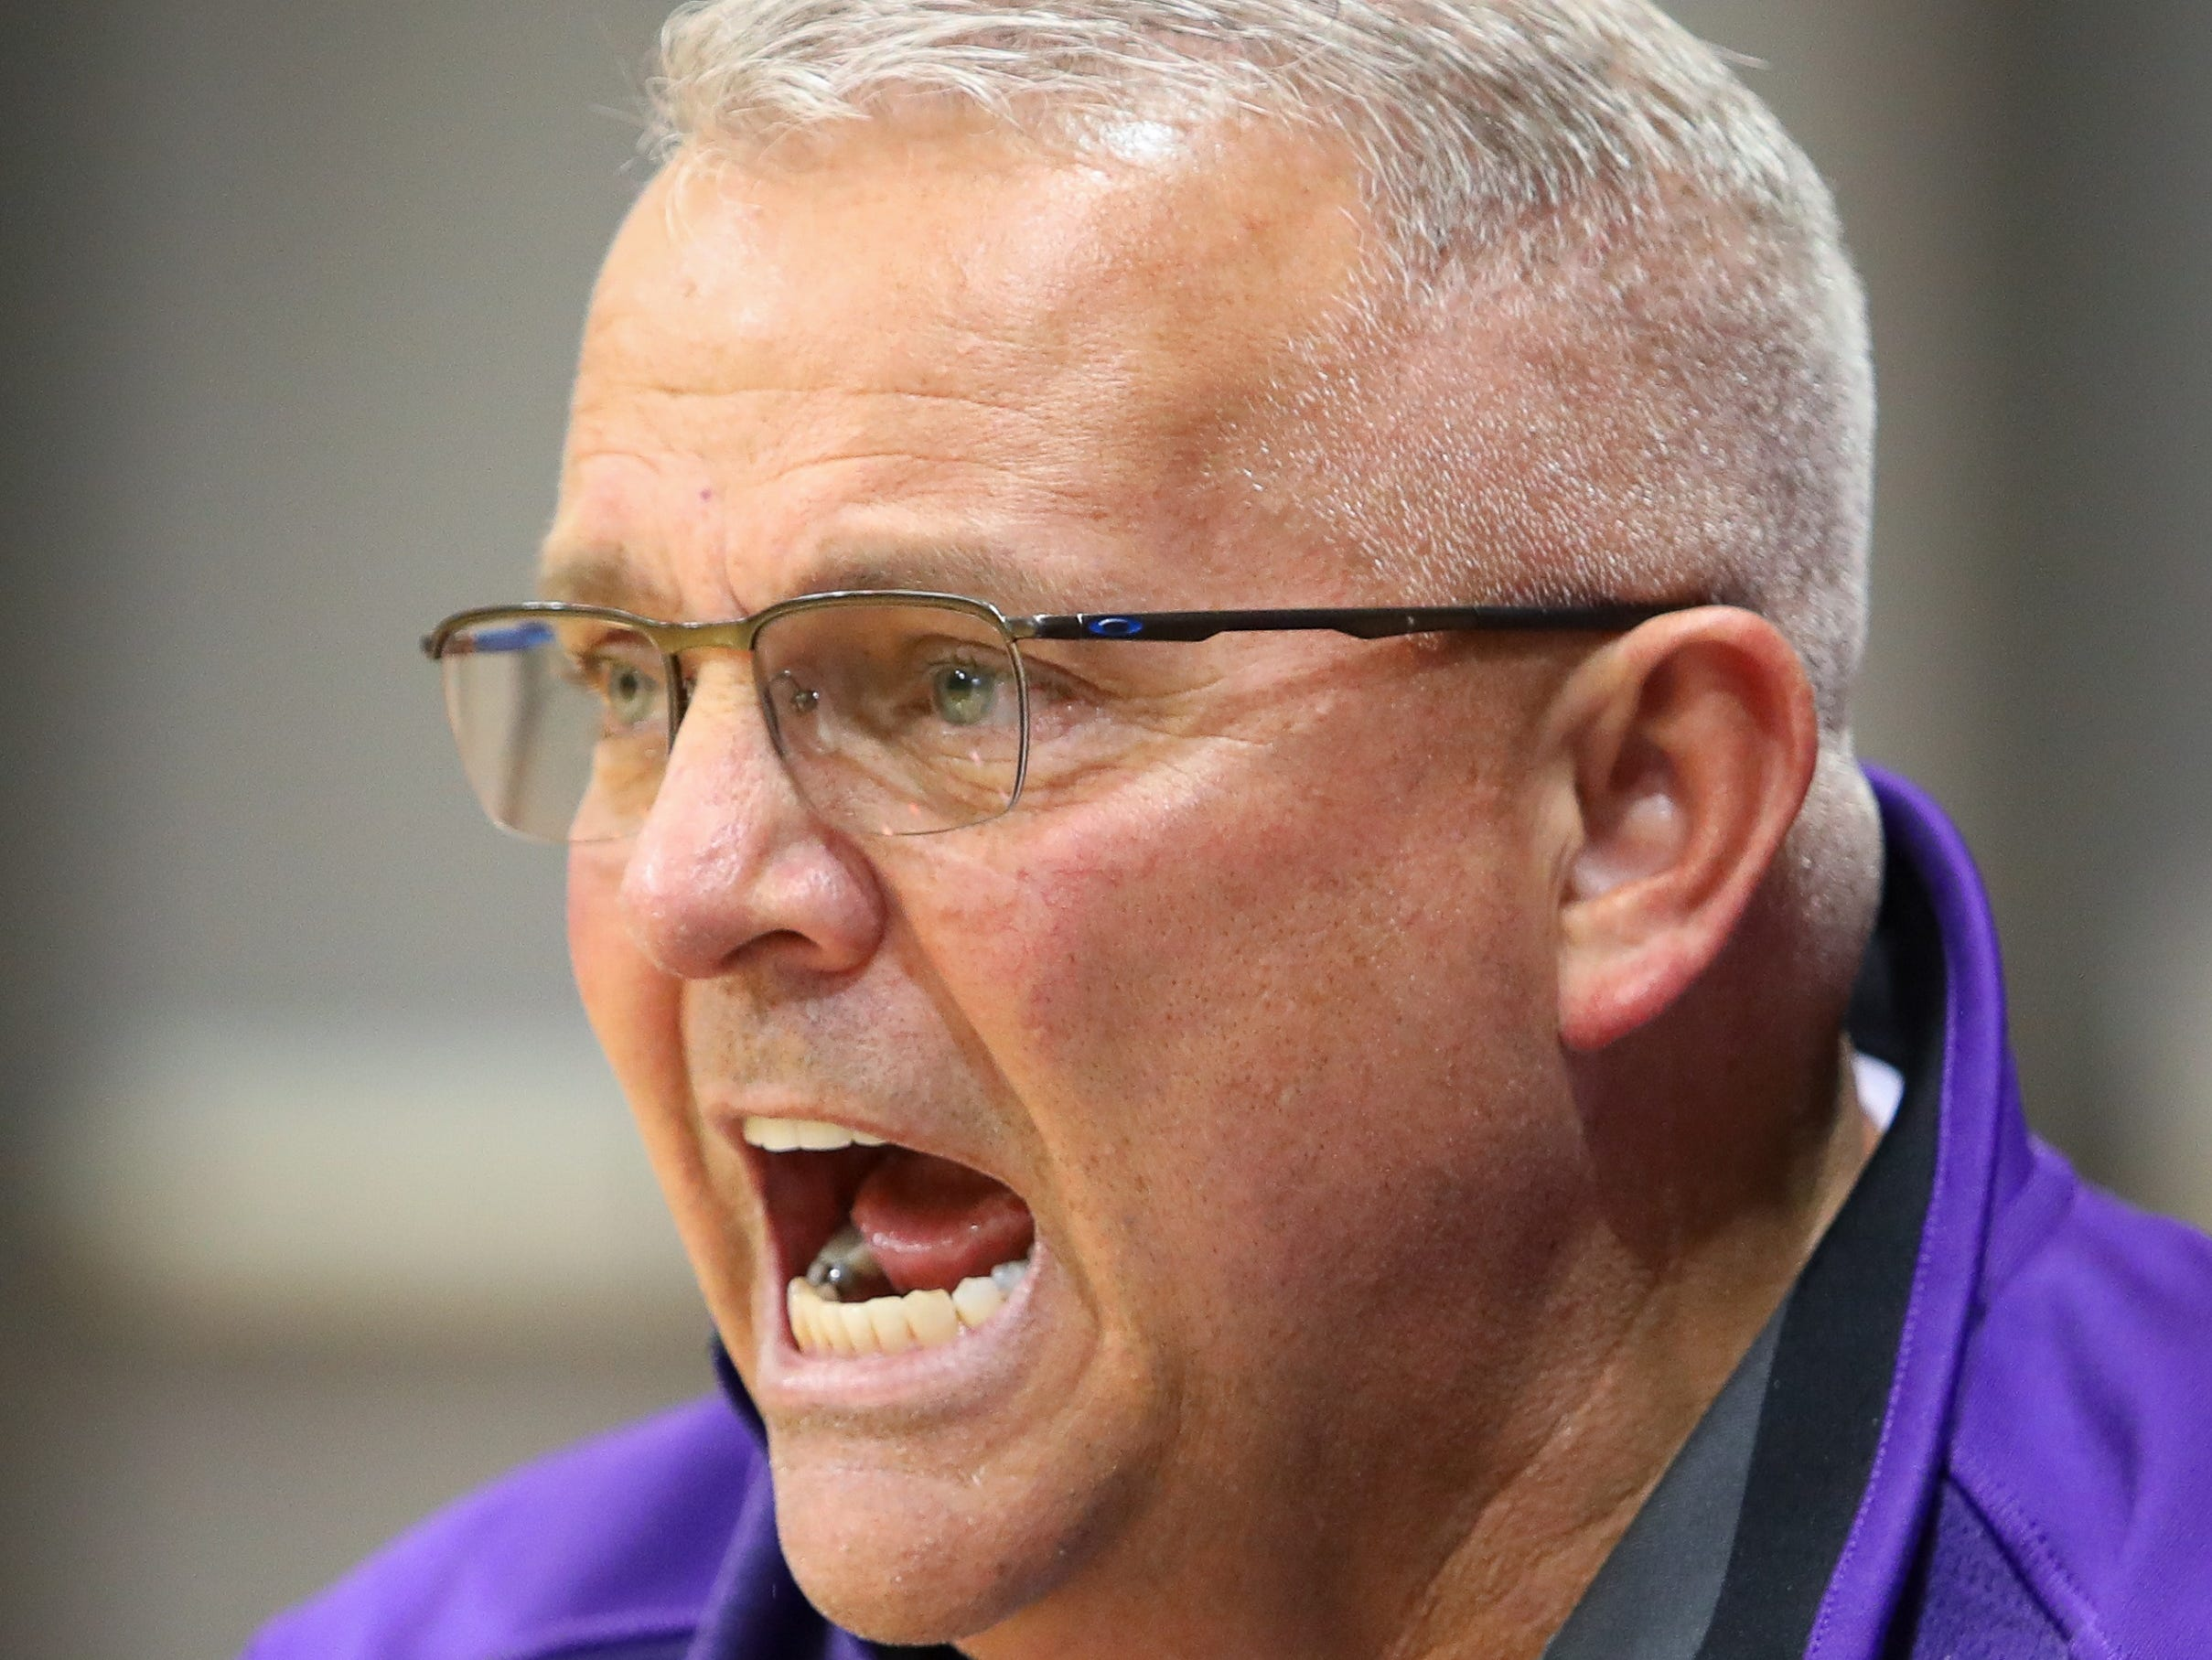 Waukee head coach Chris Guess yells out plays during a girls high school basketball game between the Valley Tigers and the Waukee Warriors at Waukee High School on Dec. 14, 2018 in Waukee, Iowa.